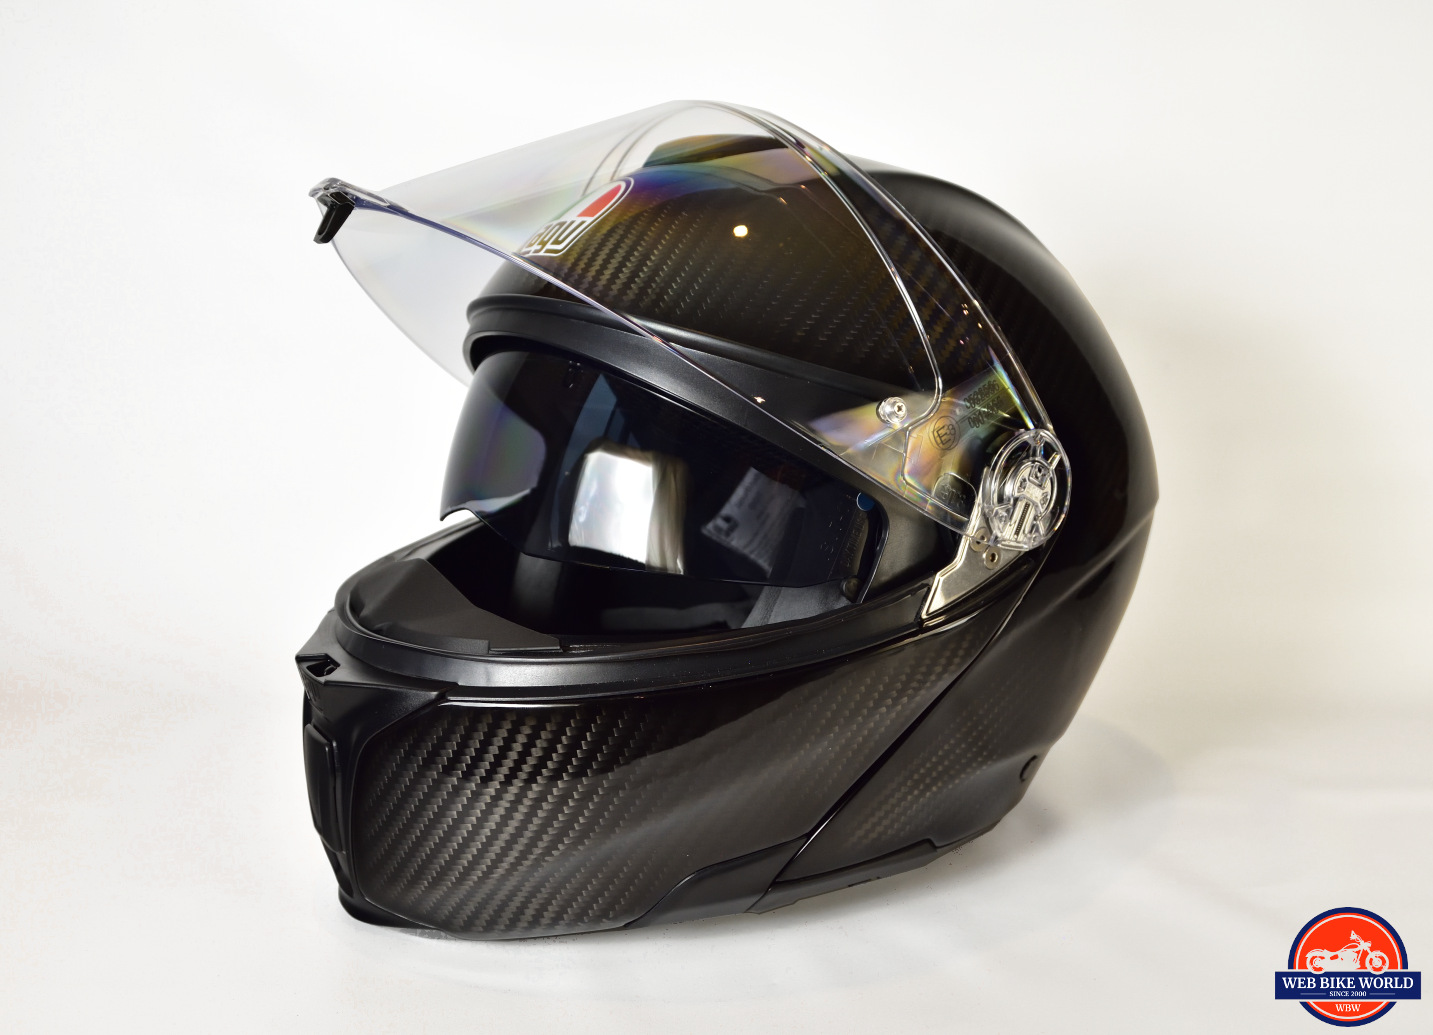 AGV Sportmodular Carbon Gloss helmet left side view.